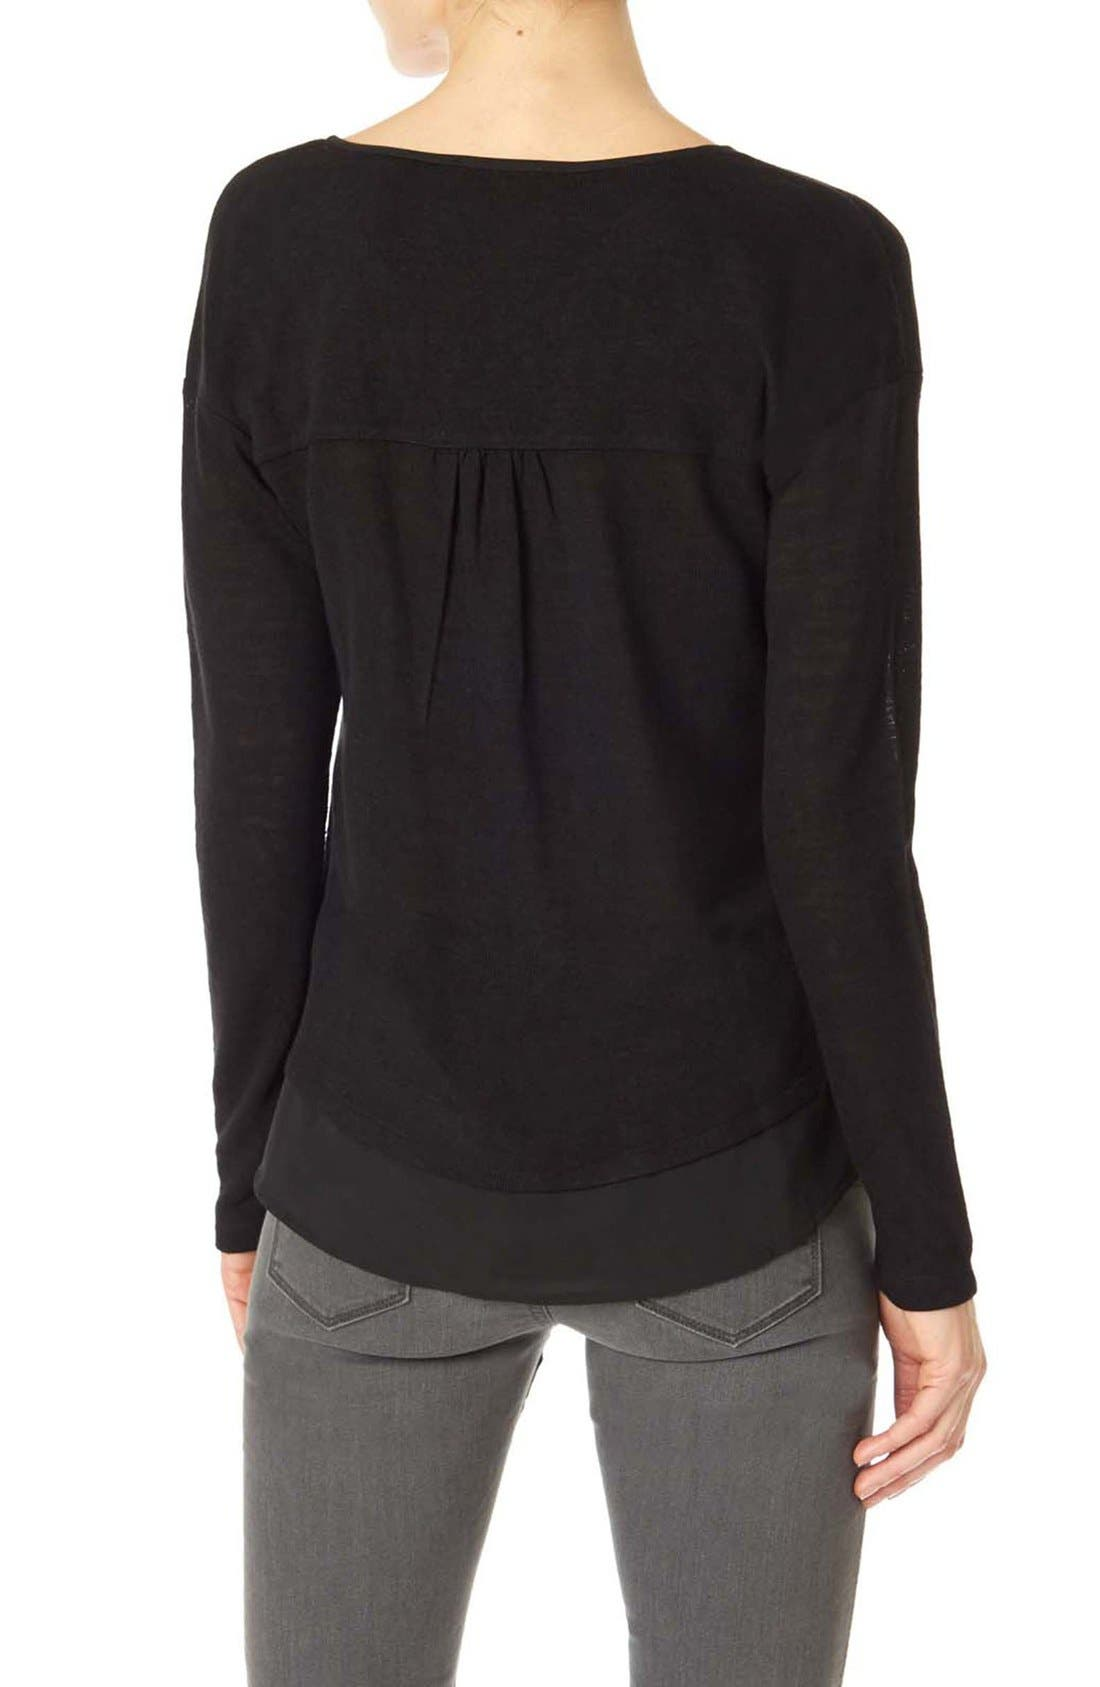 Alternate Image 2  - Sanctuary 'Hanna' Split Neck Knit Top (Regular & Petite)